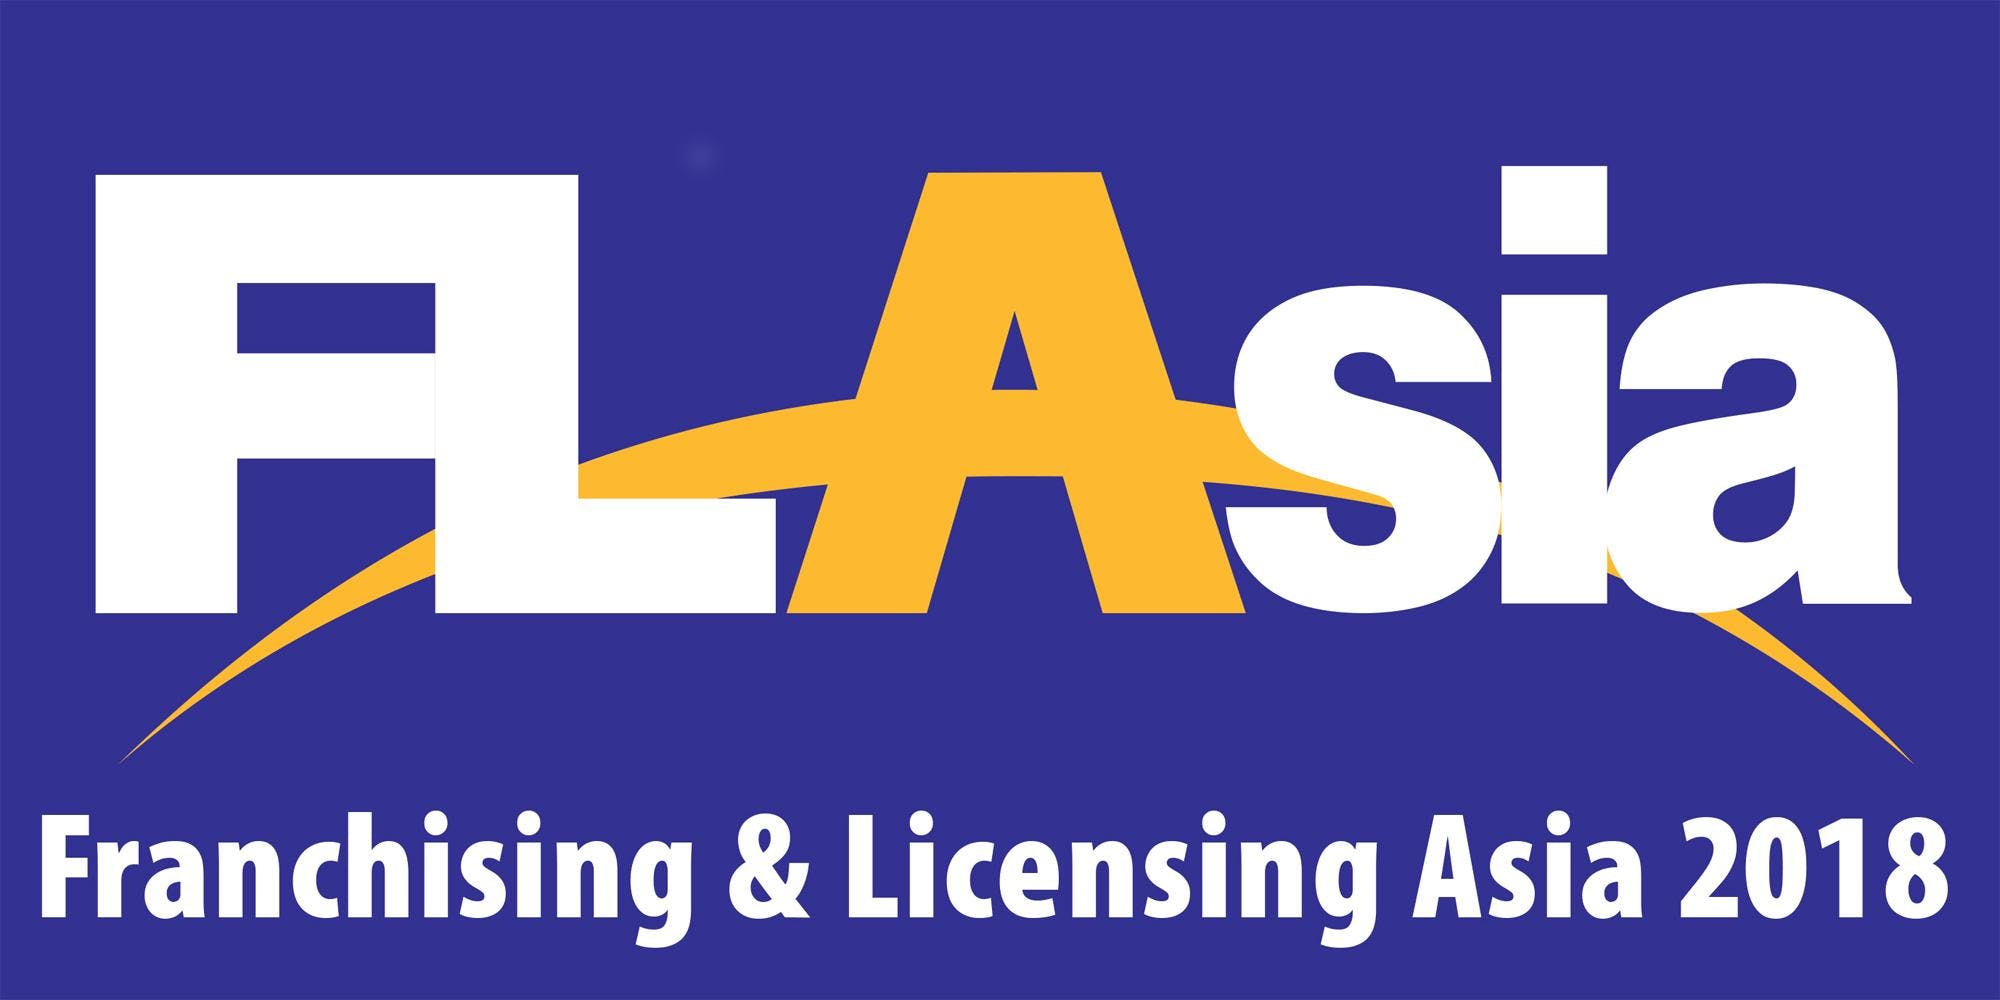 Franchising &amp Licensing Asia (FLAsia) 2018